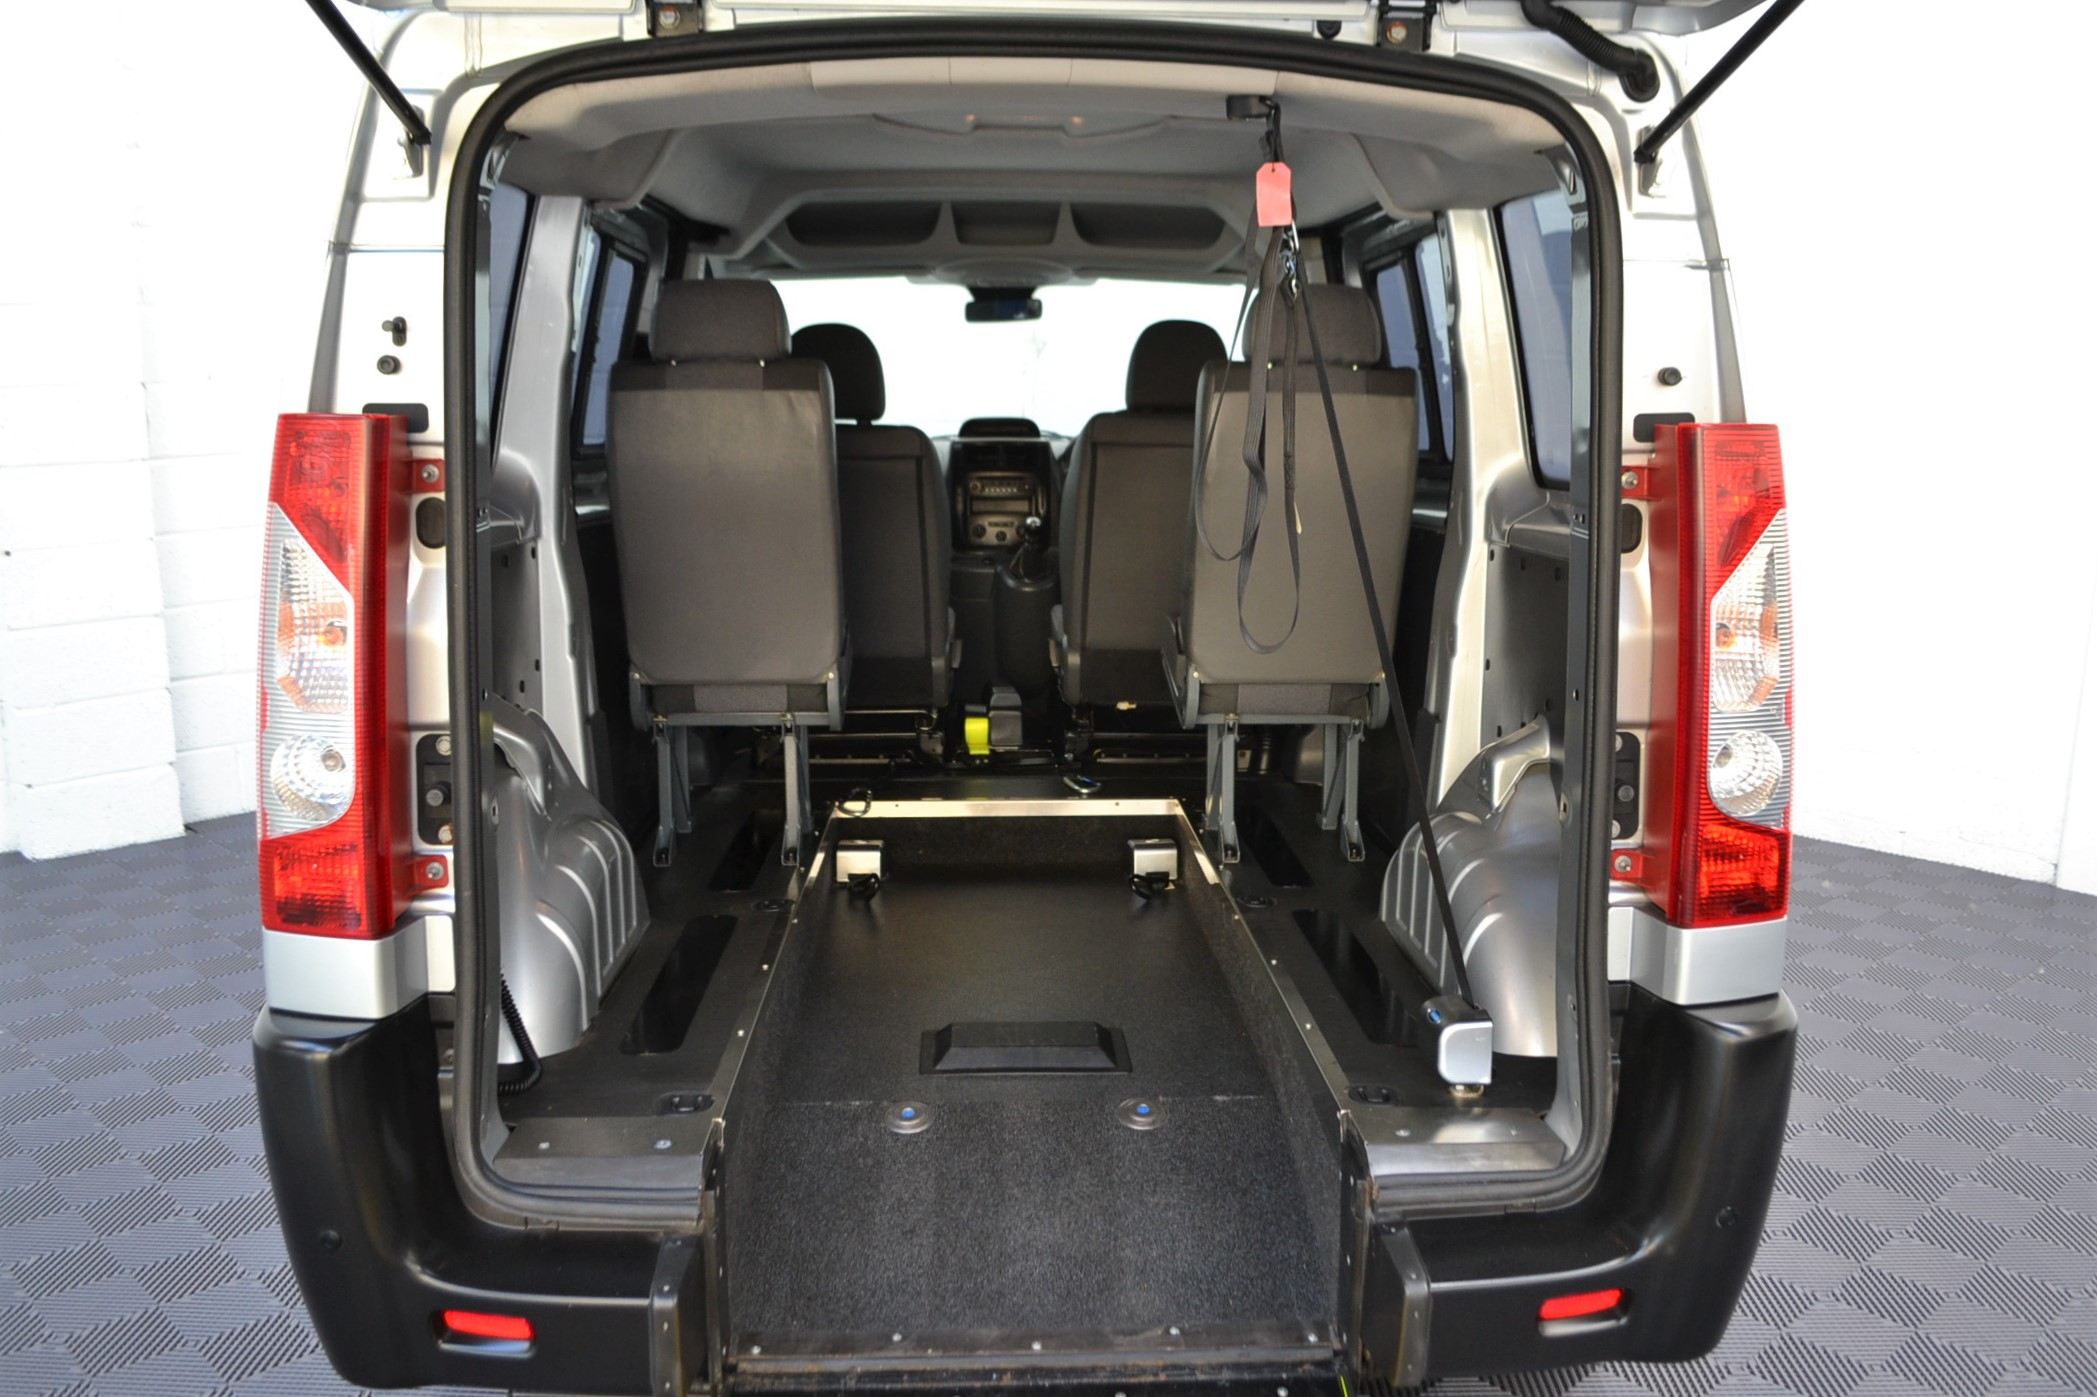 Disabled Cars For Sale Bristol Wheelchair Accessible Vehicles Used For Sale Somerset Devon Dorset Bath Peugeot Expert SF13 LRZ 10